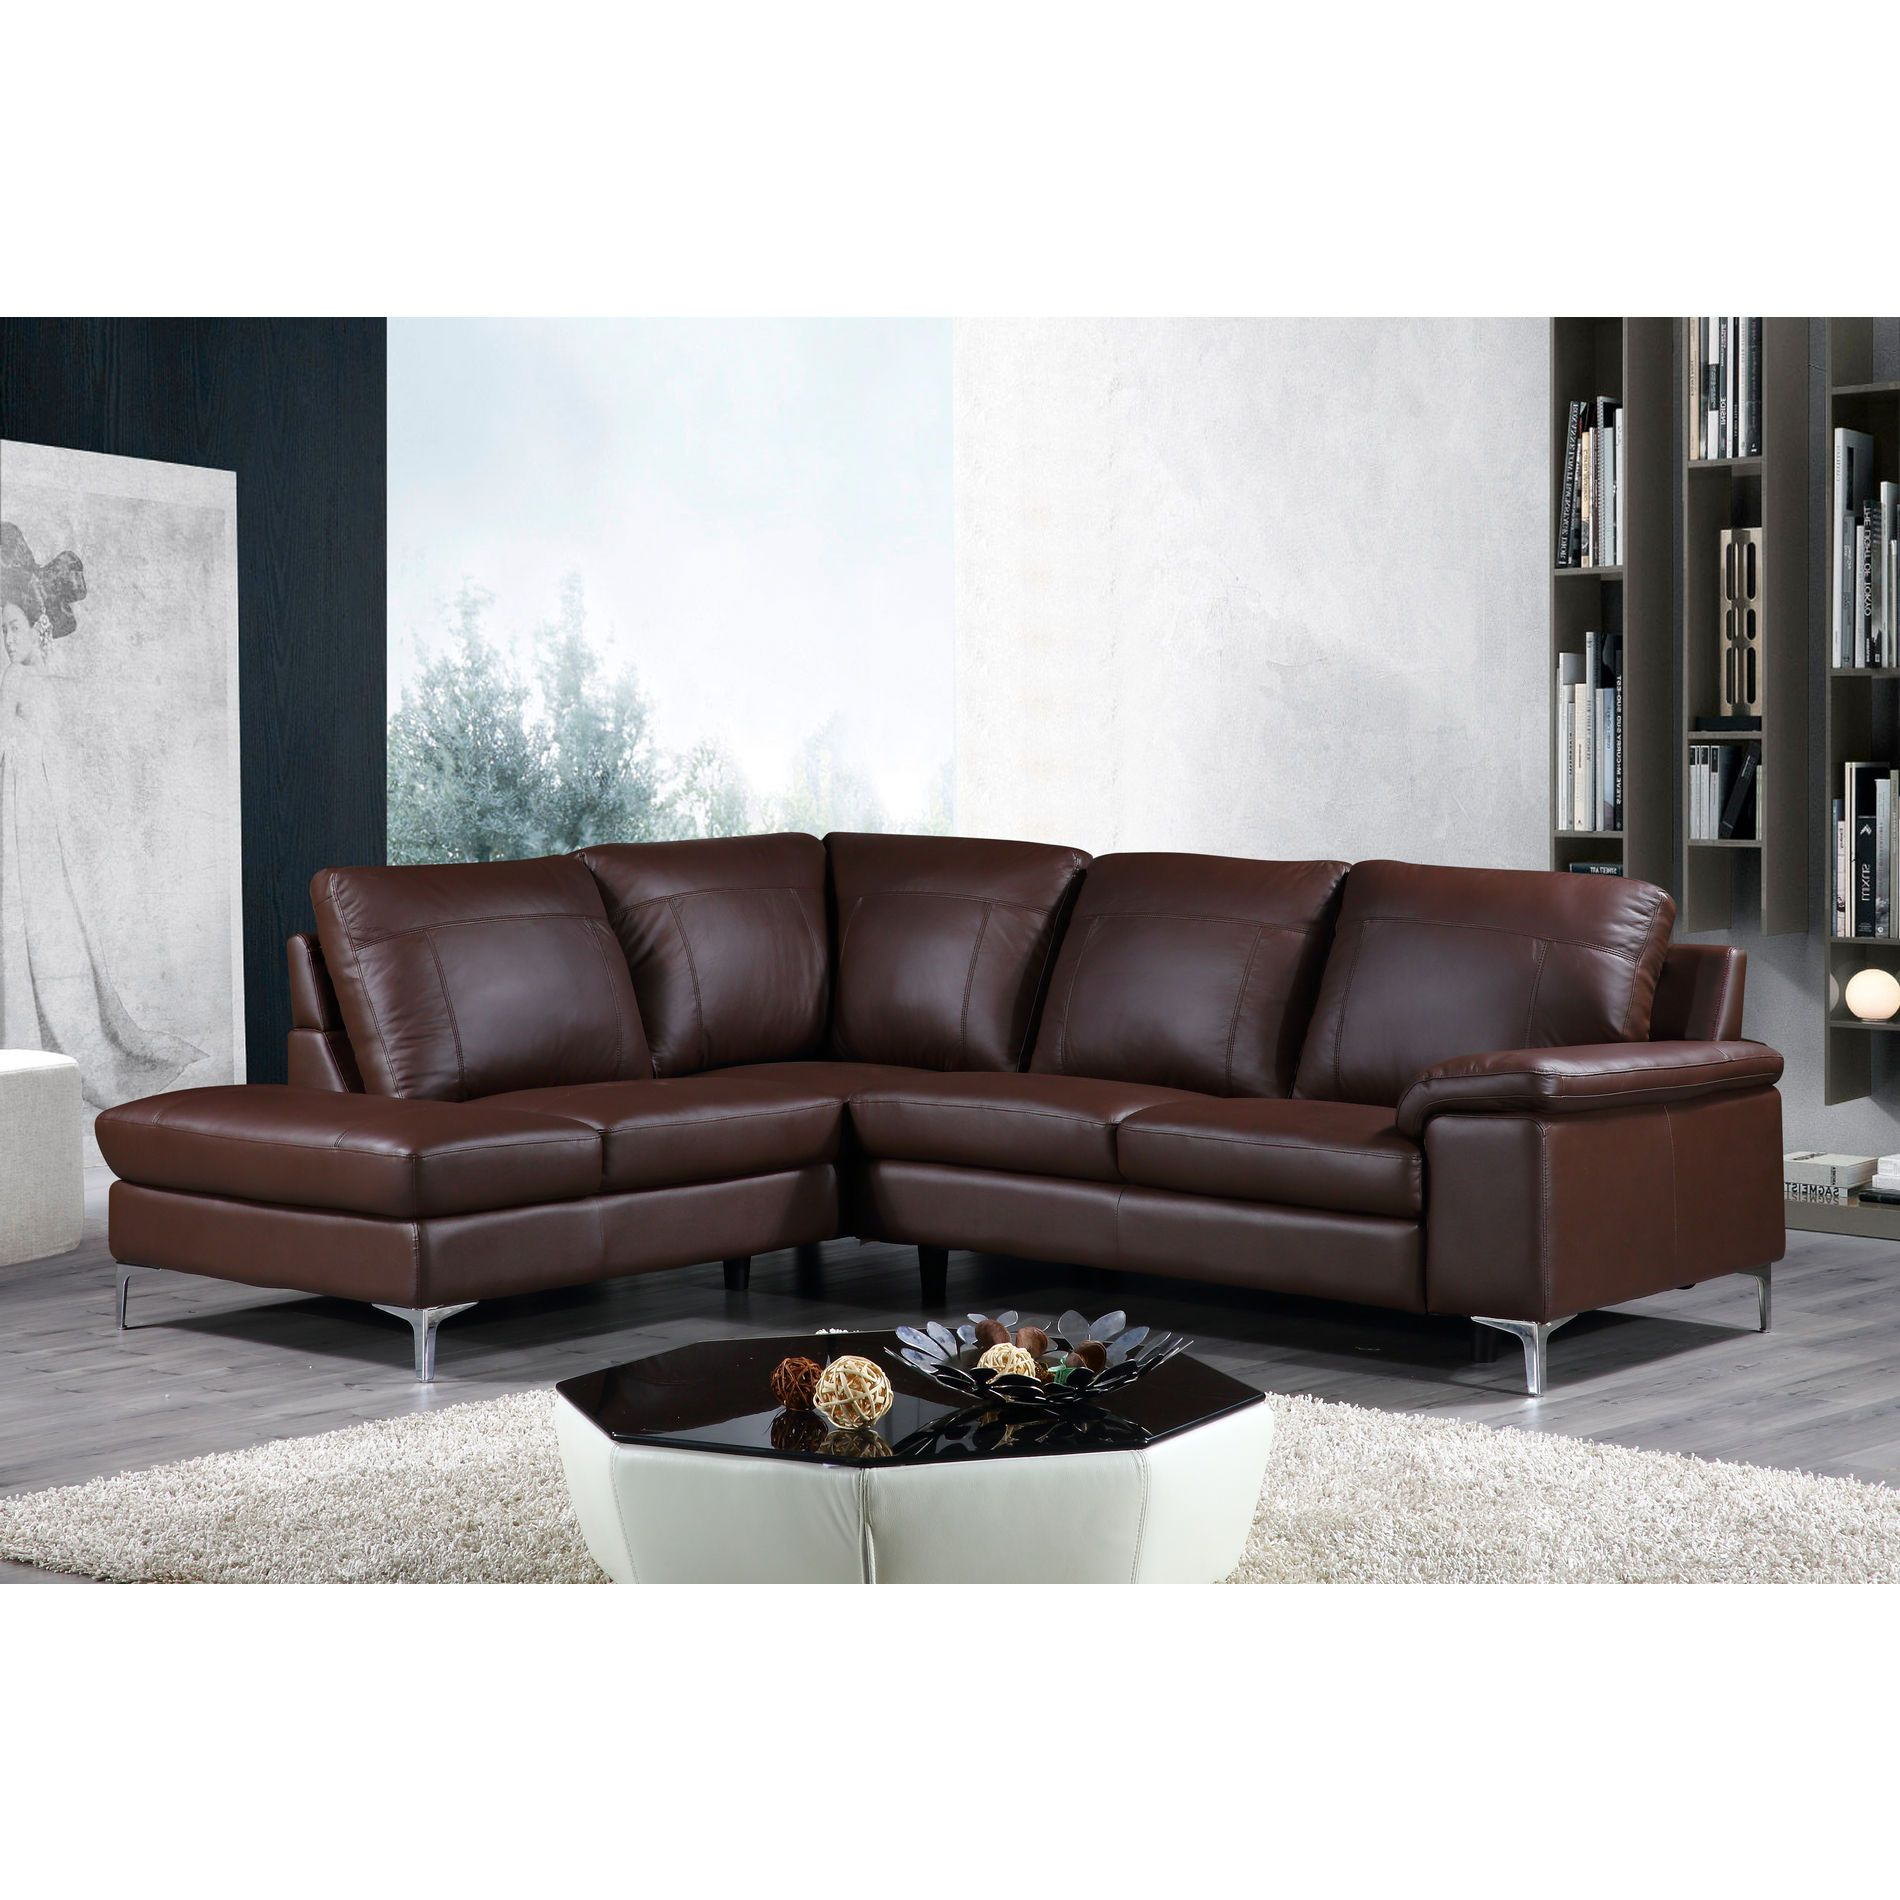 Cortesi Home Contemporary Dallas Genuine Leather Sectional Sofa With Left Side Facing Chaise Lounge Brown 80 X98 Leather Sectional Sofas Sectional Sofa Genuine Leather Sectional